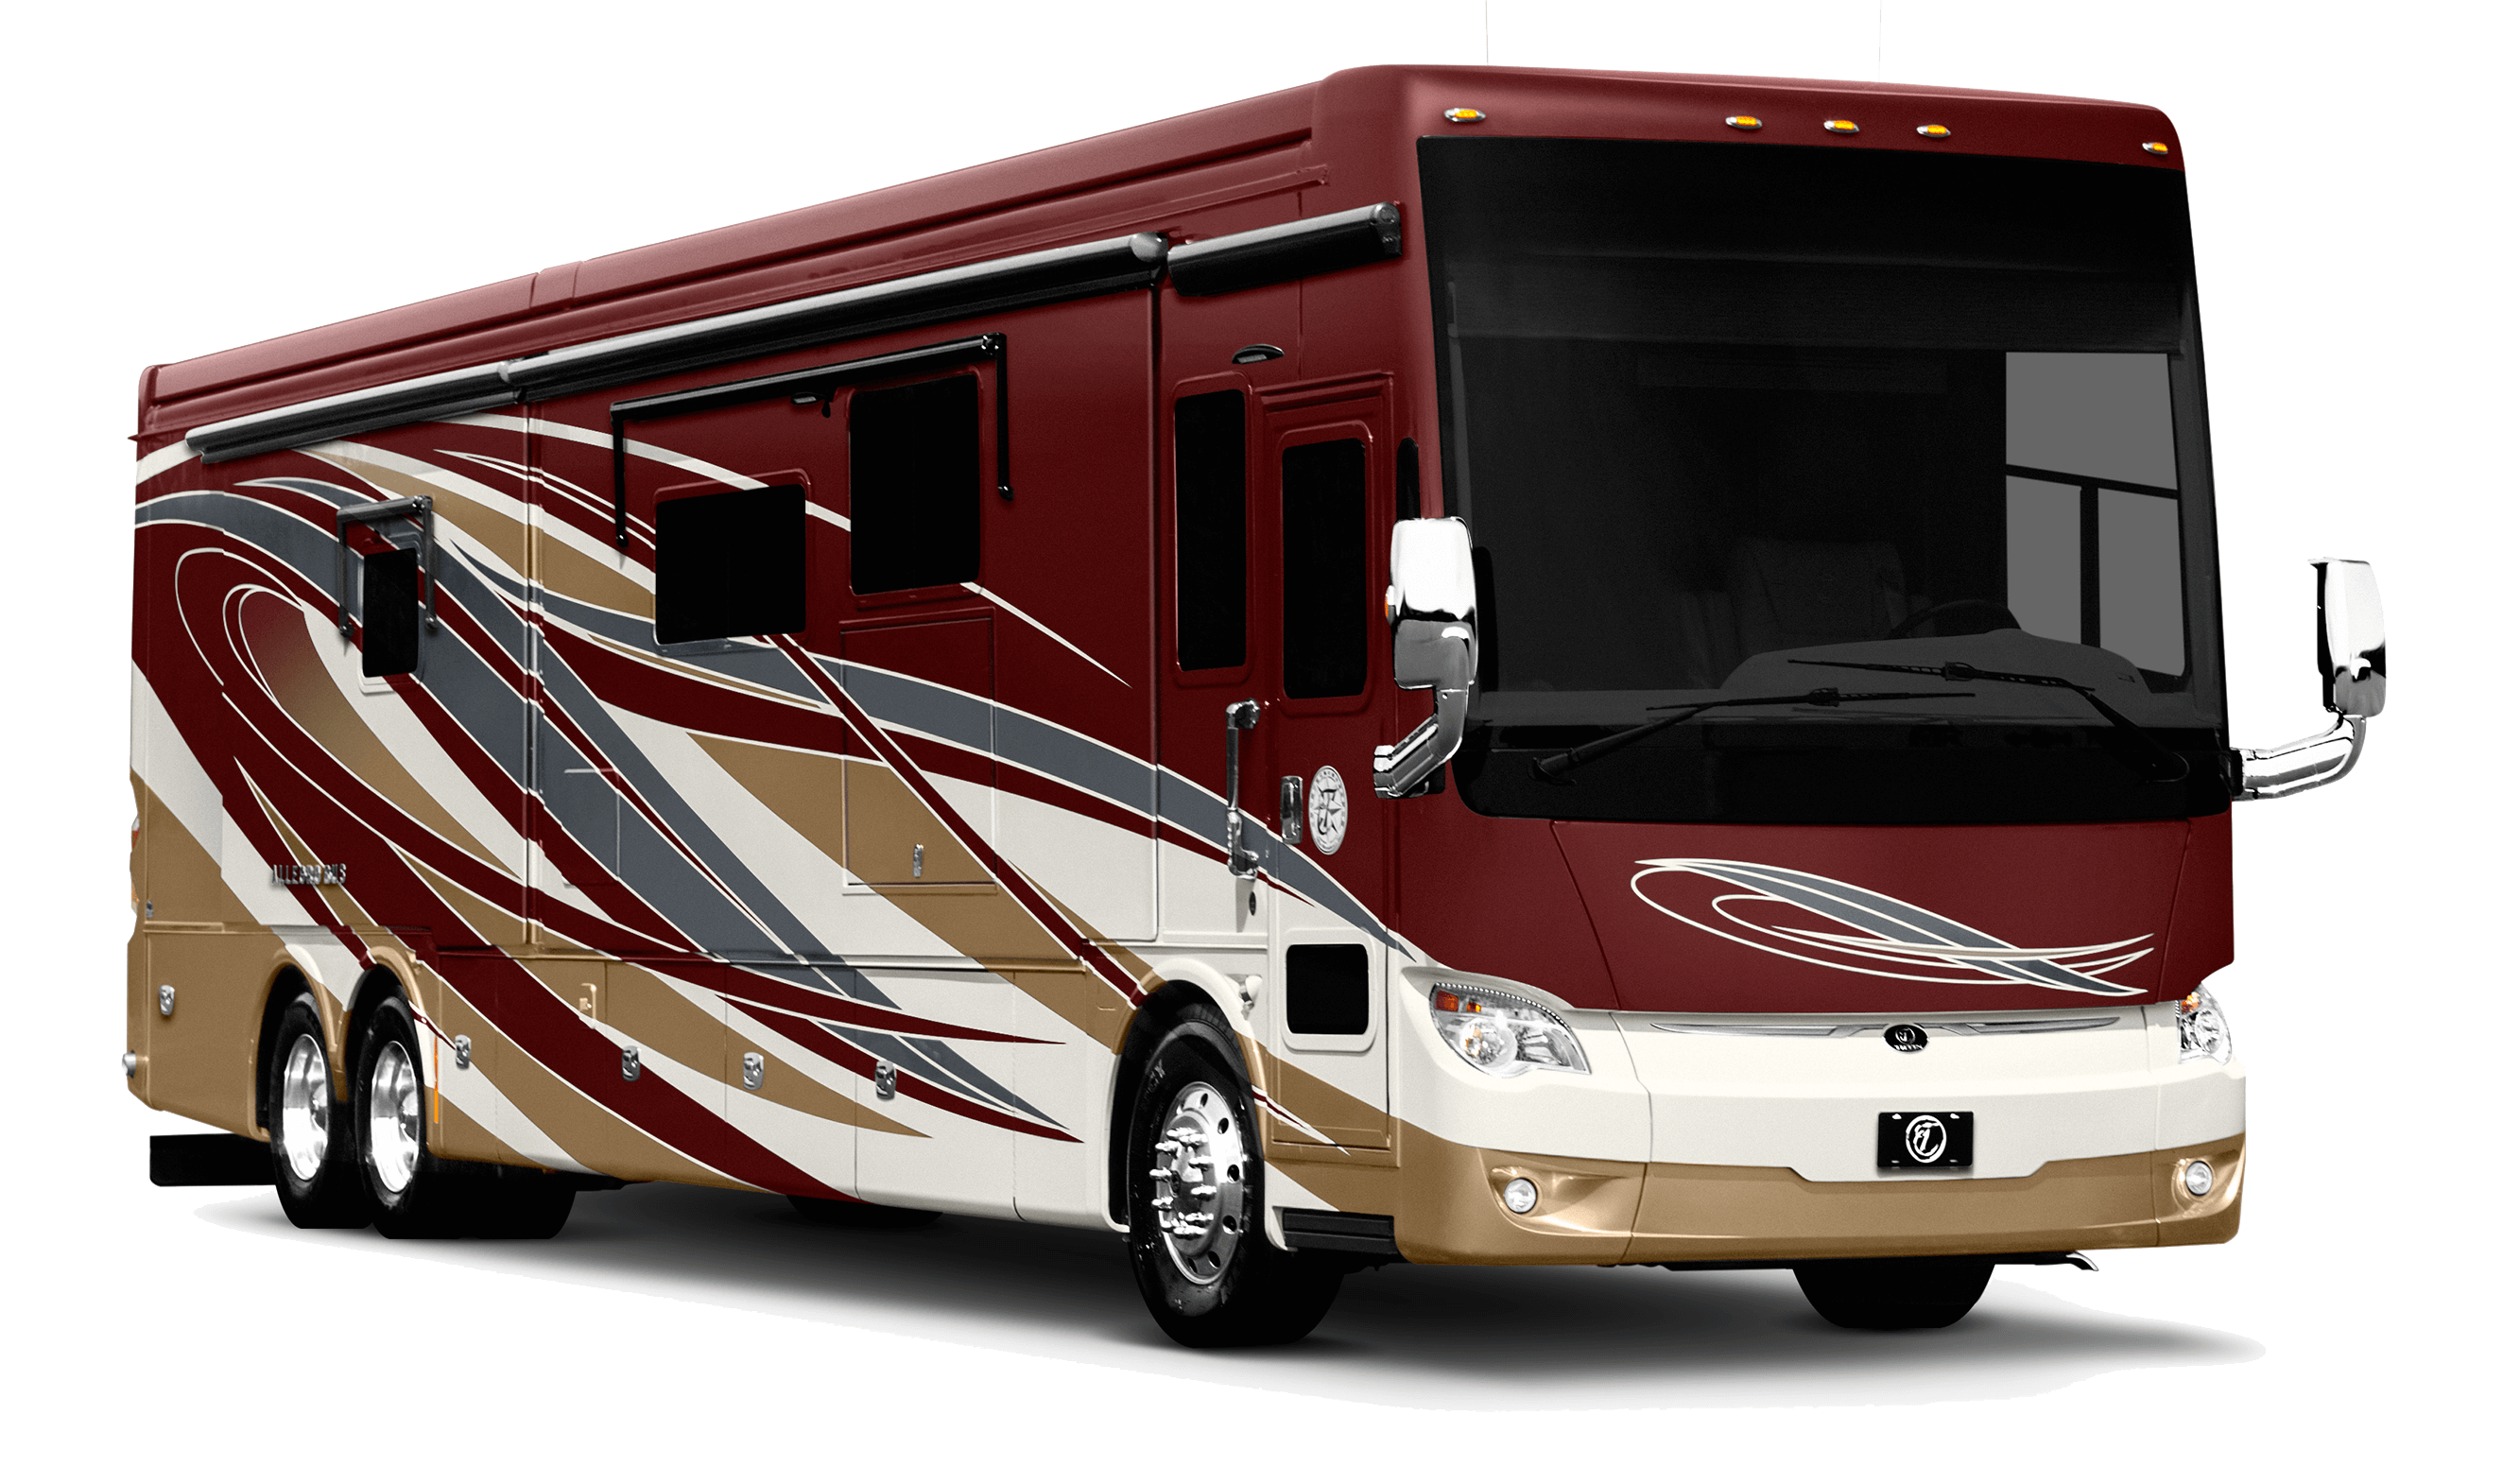 Tiffin Allegro Bus Diesel Motorhomes Luxury On The Road 2015 Thor Vegas Wiring Diagram